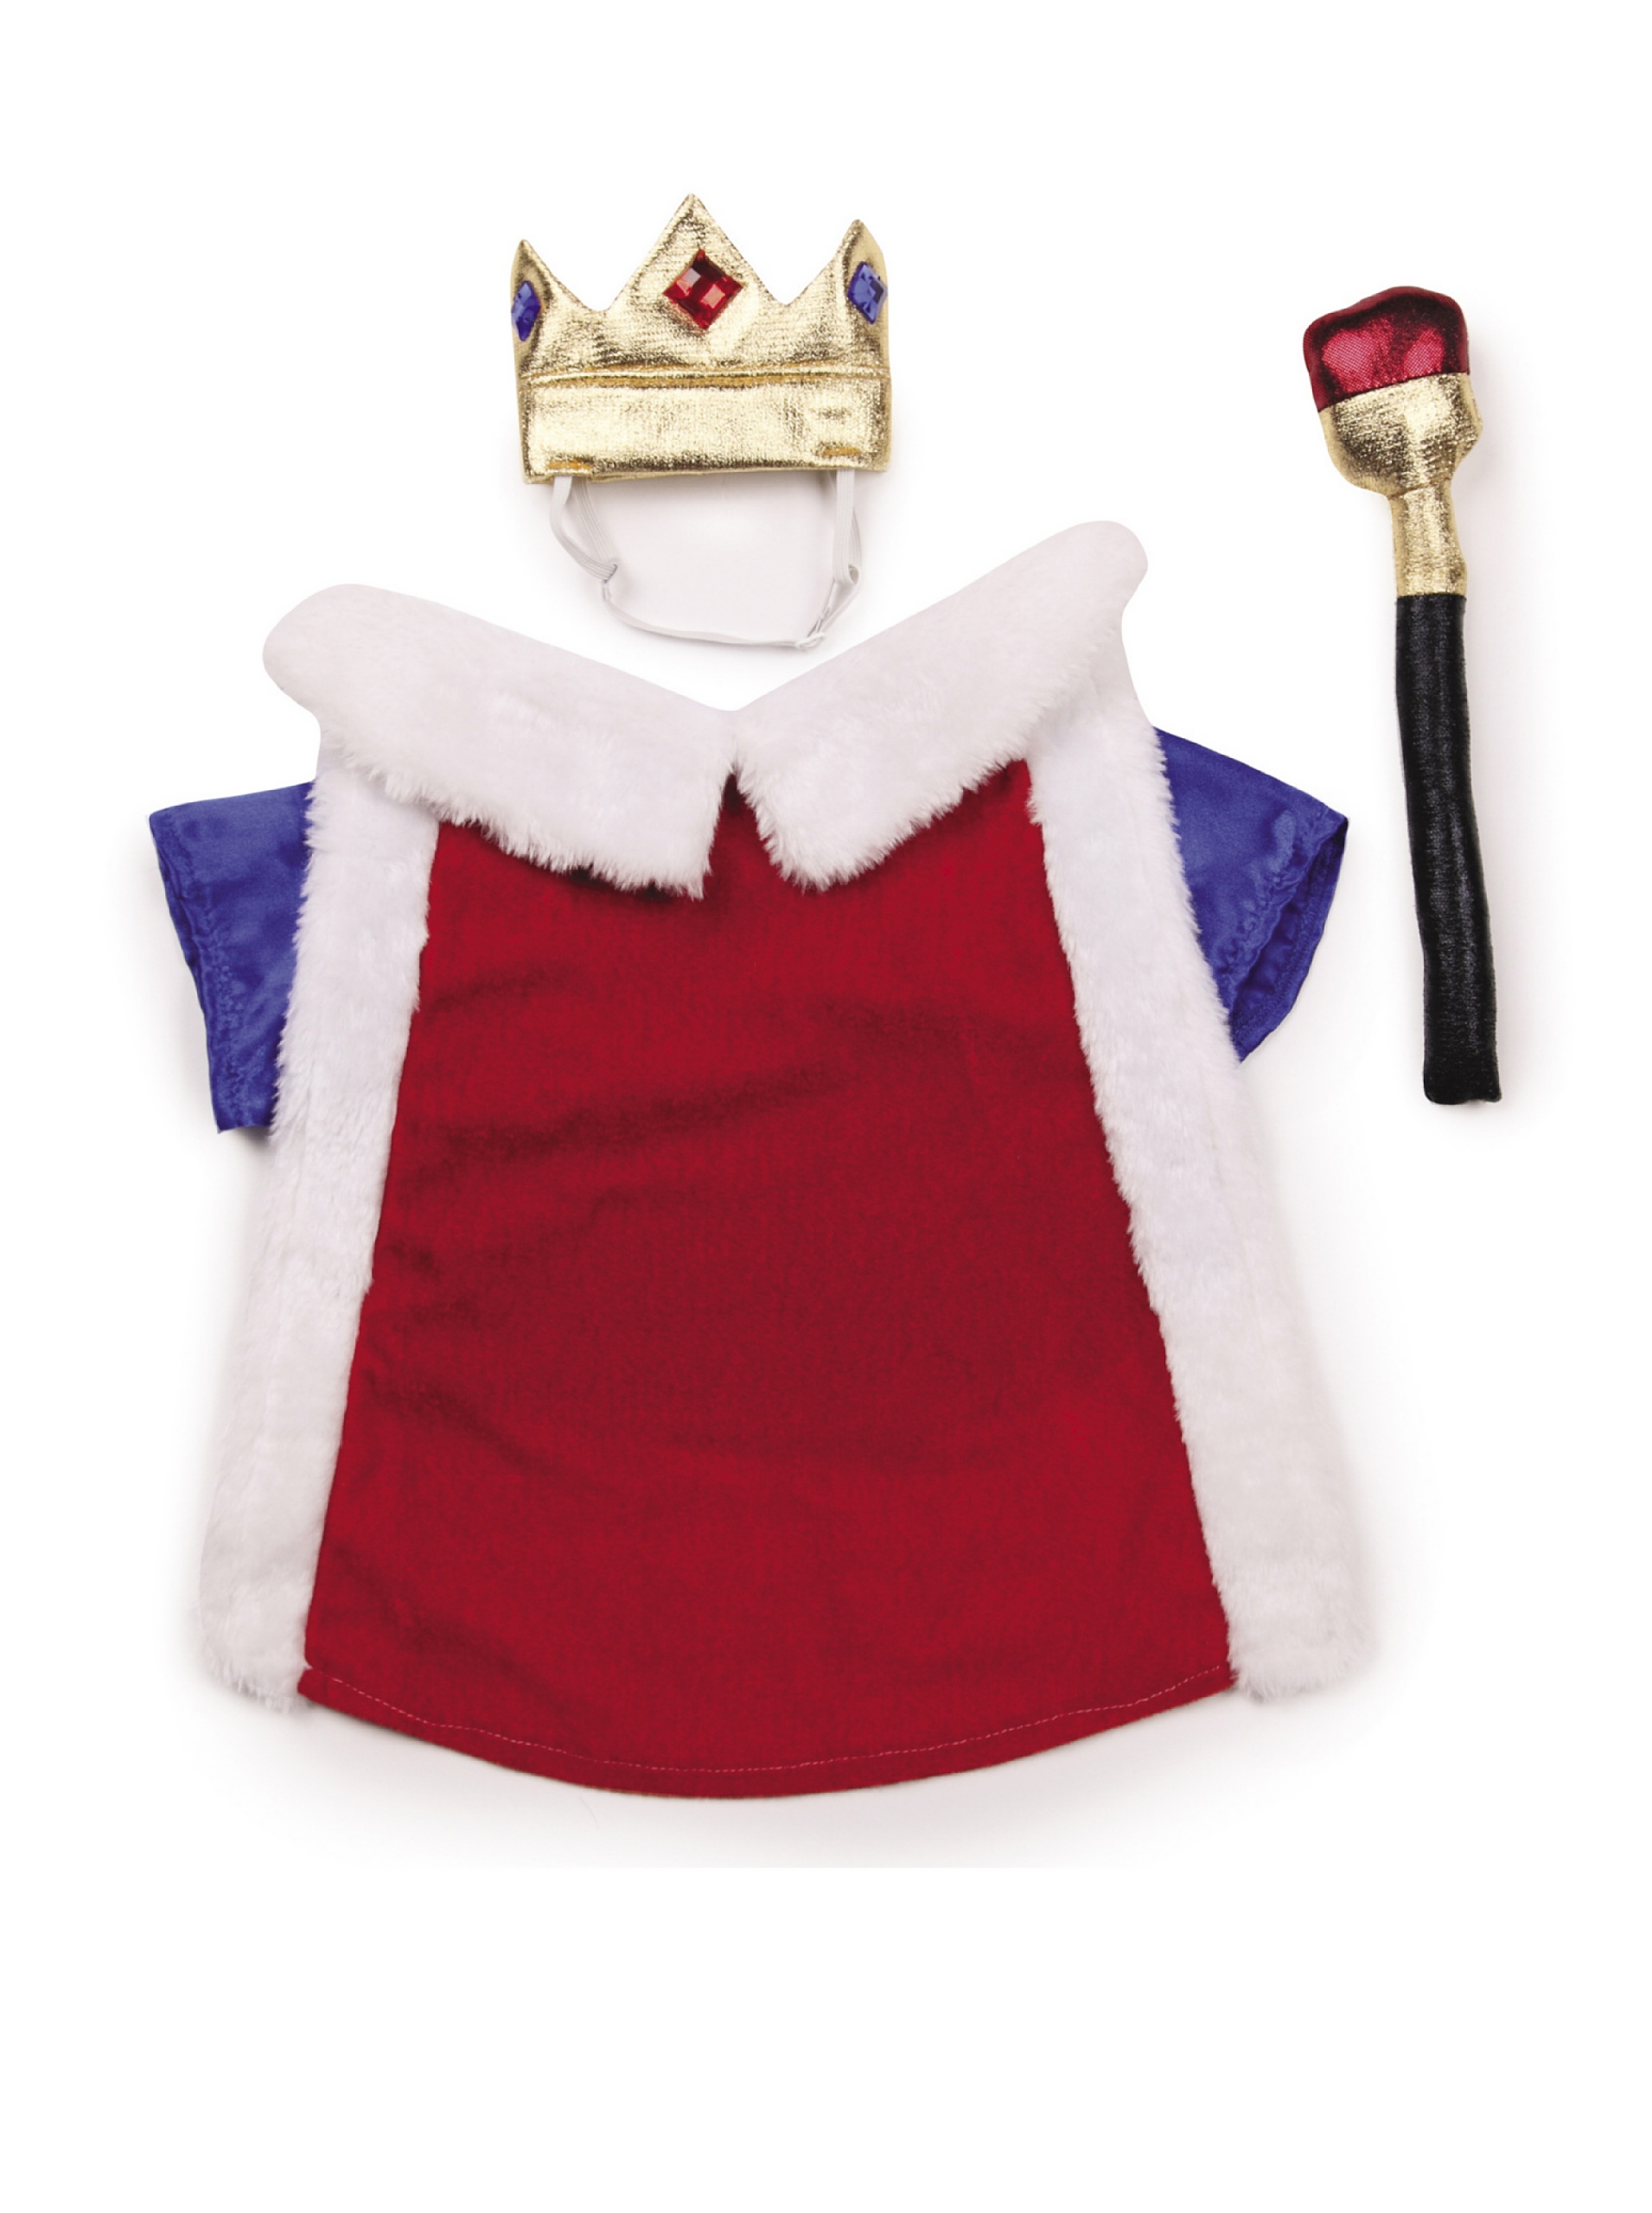 Zack & Zoey Royal Pup Dog Costume, X-Large, Red/Blue